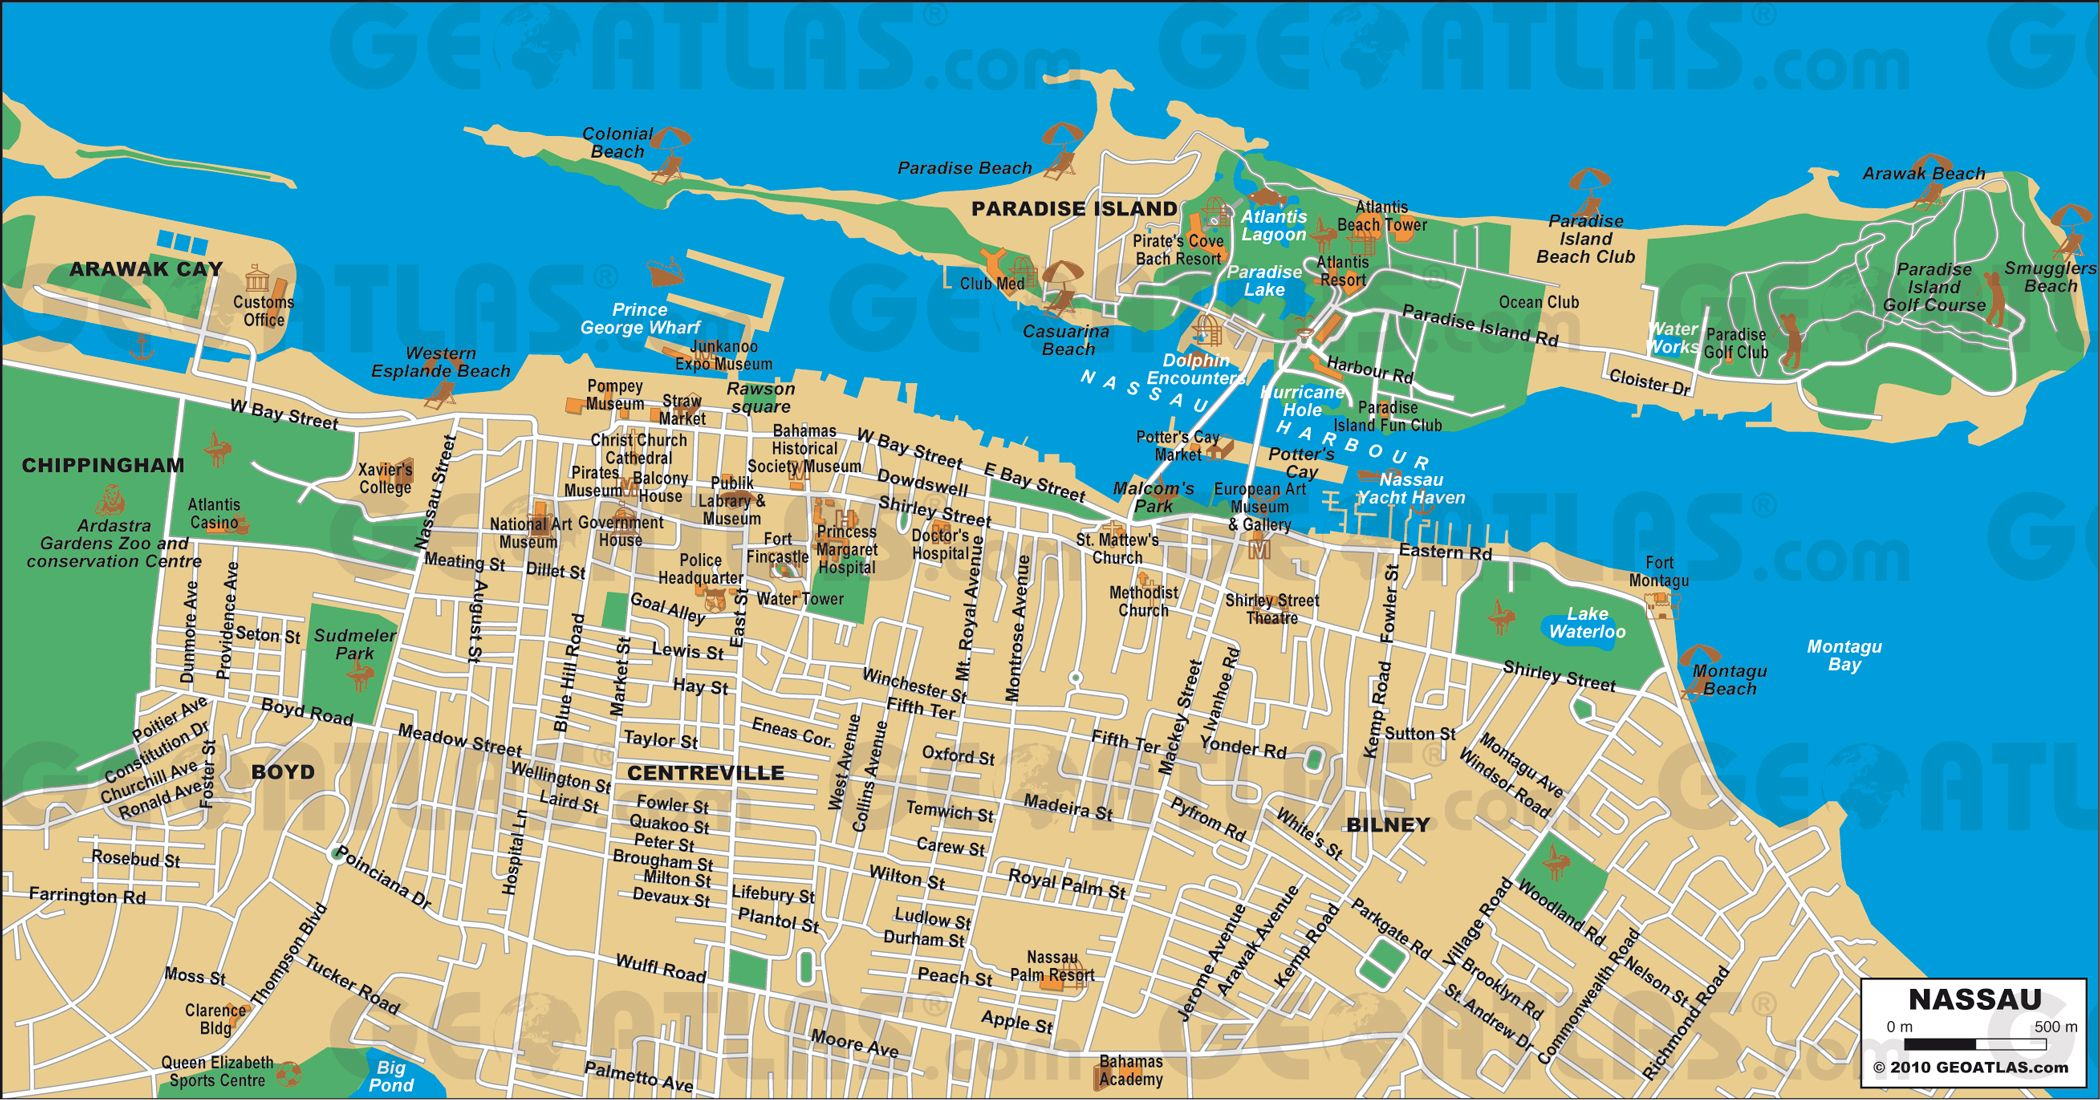 Nassau Cruise Port Guide CruisePortWiki Homeschool cruise – Nassau Bahamas Tourist Map